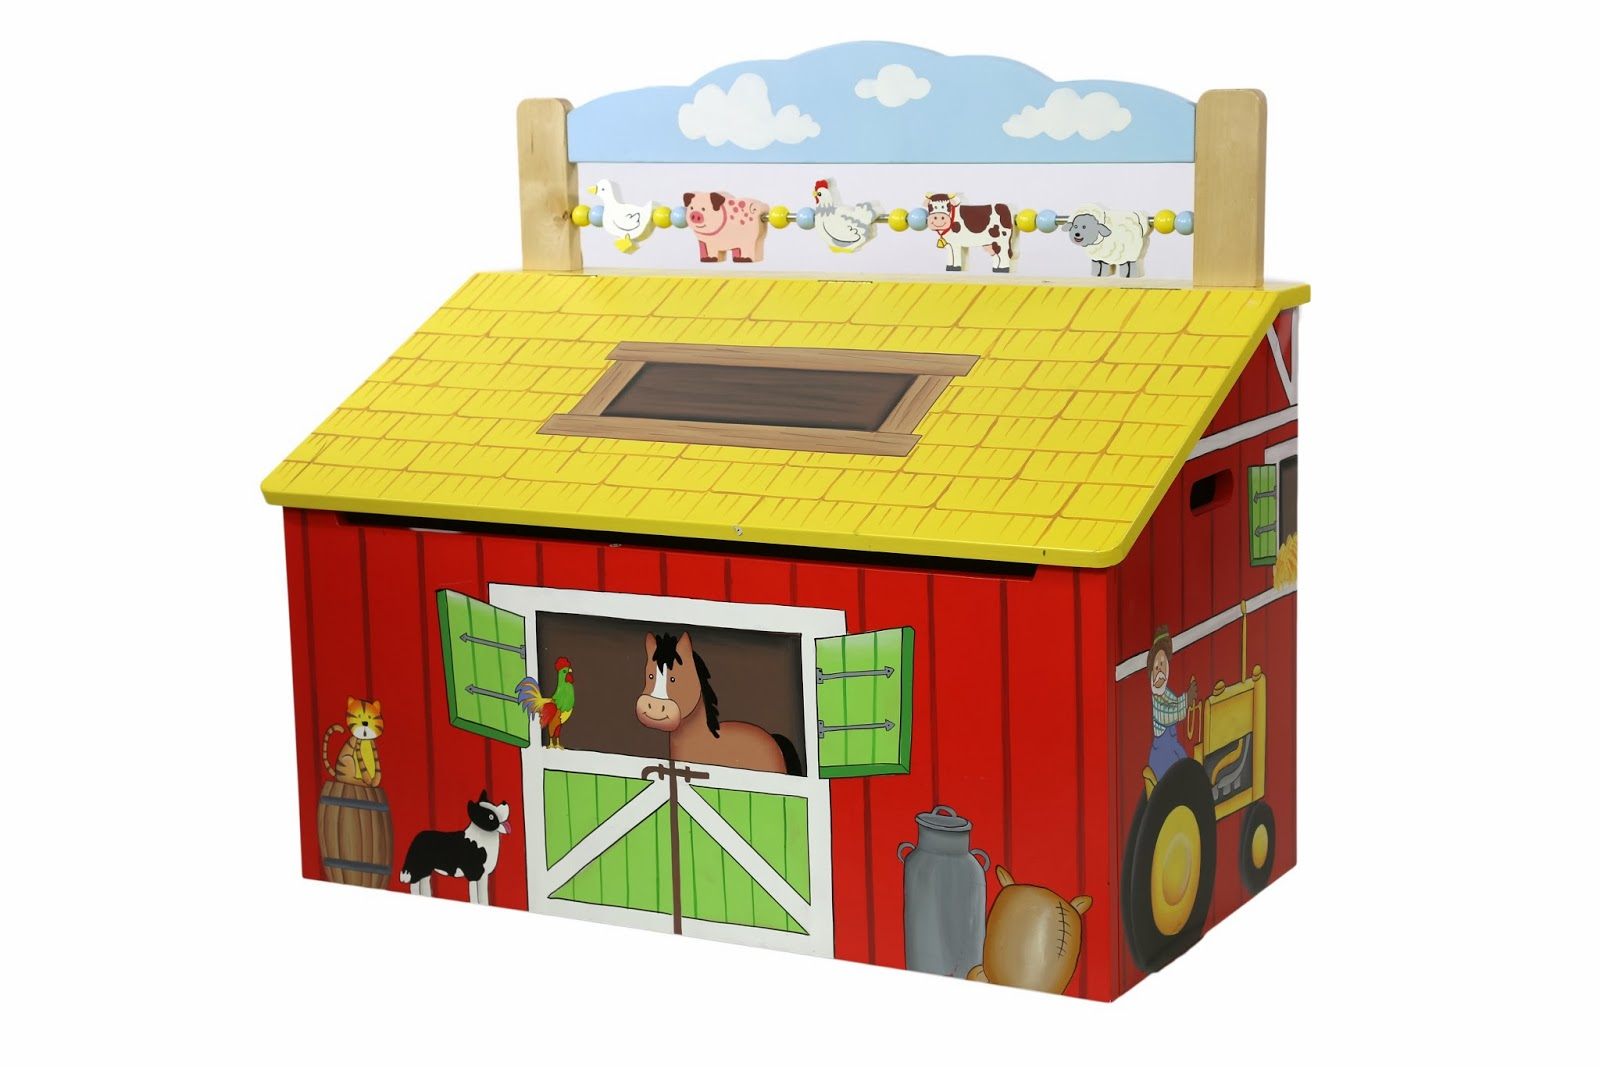 http://wooden-toys-direct.co.uk/tag/product/list/tagId/240/